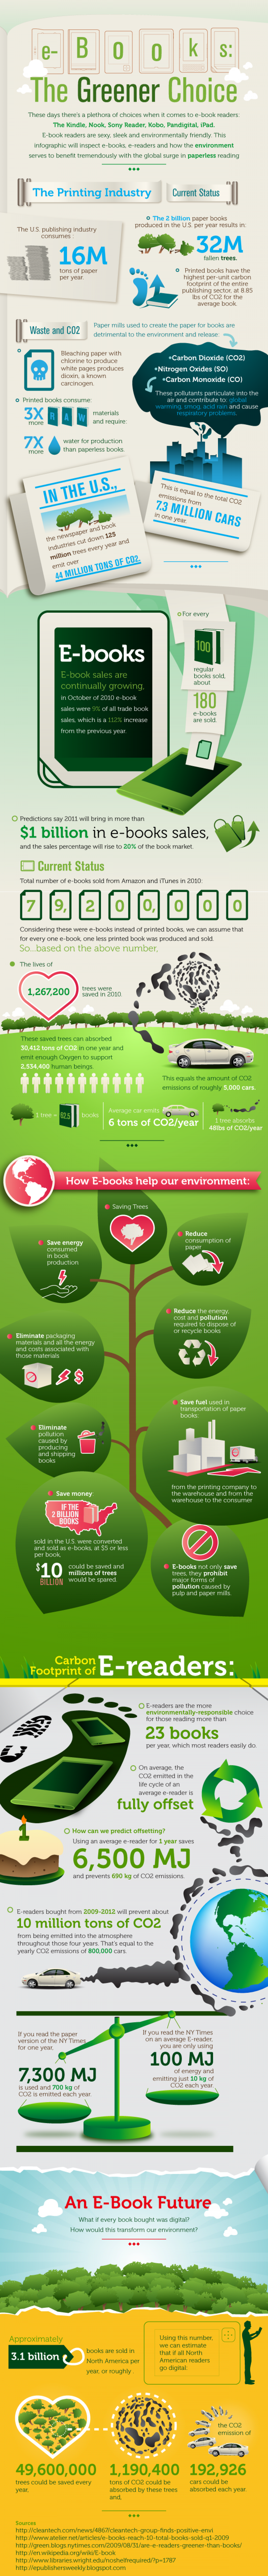 Ebooks: The Greener Choice Infographic